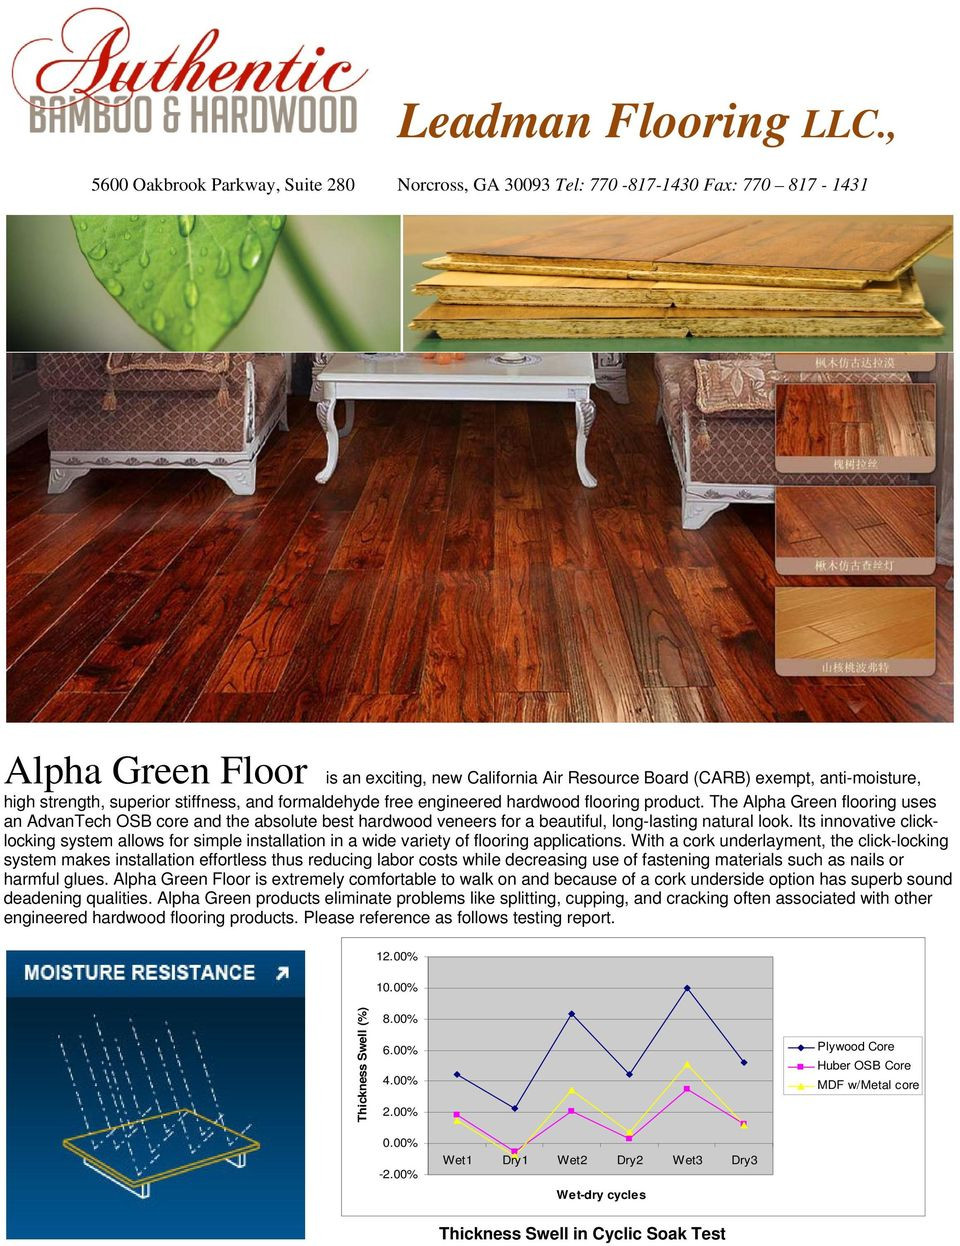 Hardwood Floor Scraping tools Of Leadman Flooring Llc Pdf In Strength Superior Stiffness and formaldehyde Free Engineered Hardwood Flooring Product